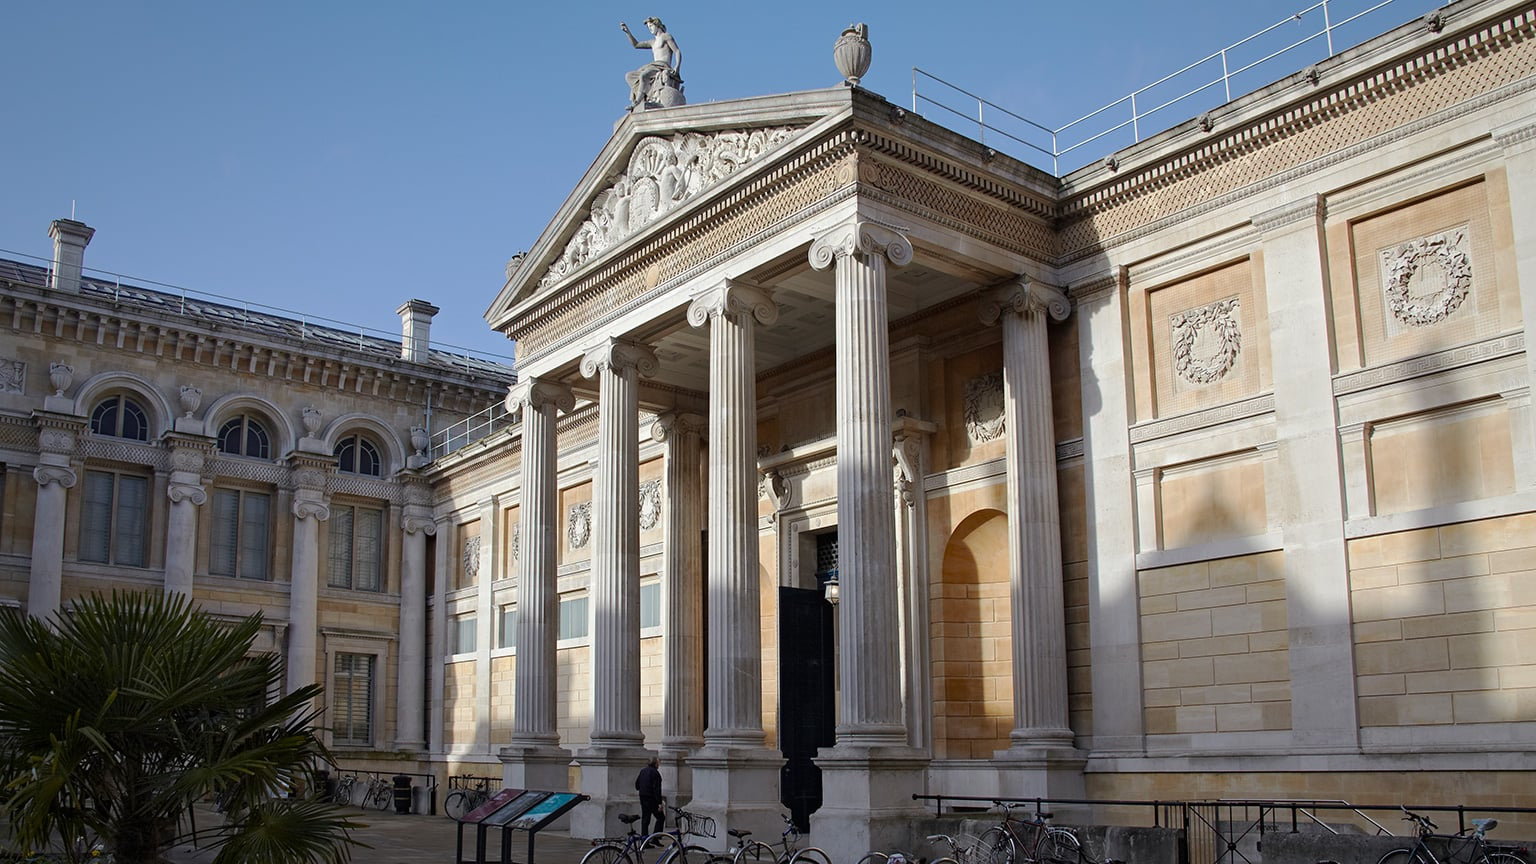 4. Ashmolean Museum, Oxford - 50% off exhibitions with National Art Pass